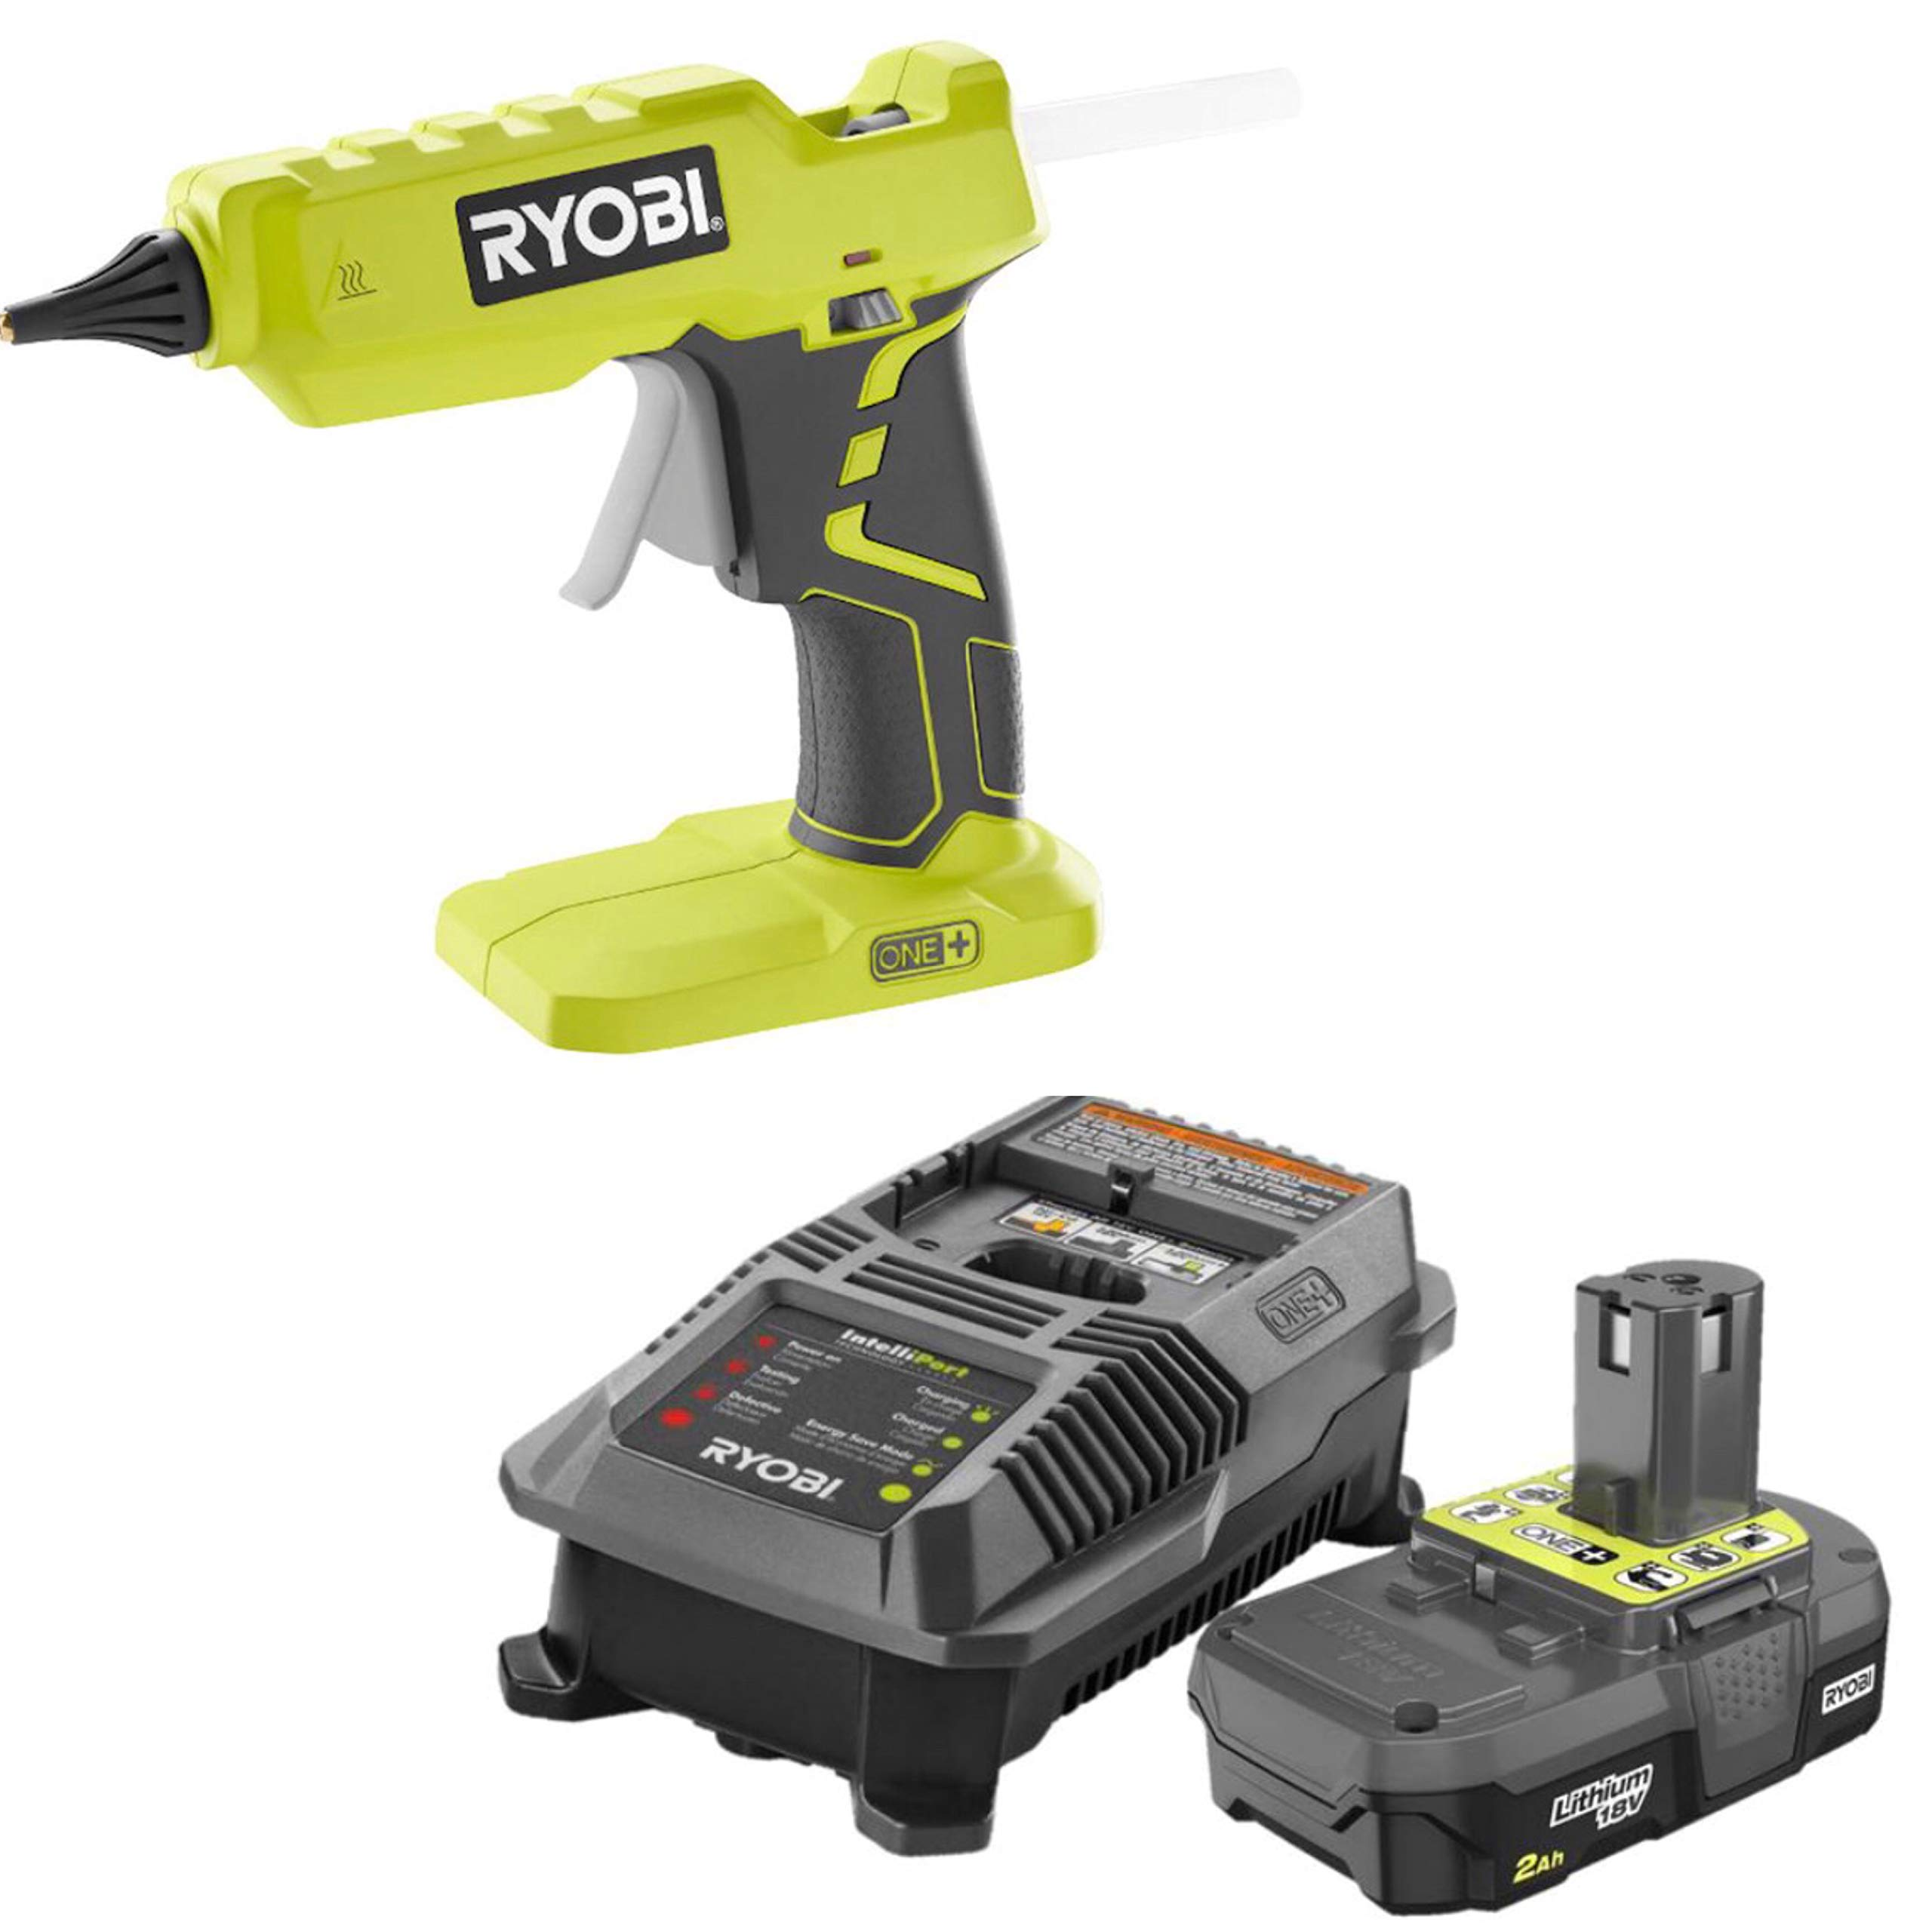 Ryobi Glue Gun P305 with Charger & Lithium-ion battery P163 18-Volt ONE+ 2.0 Ah battery and charger by Ryobi america corporation